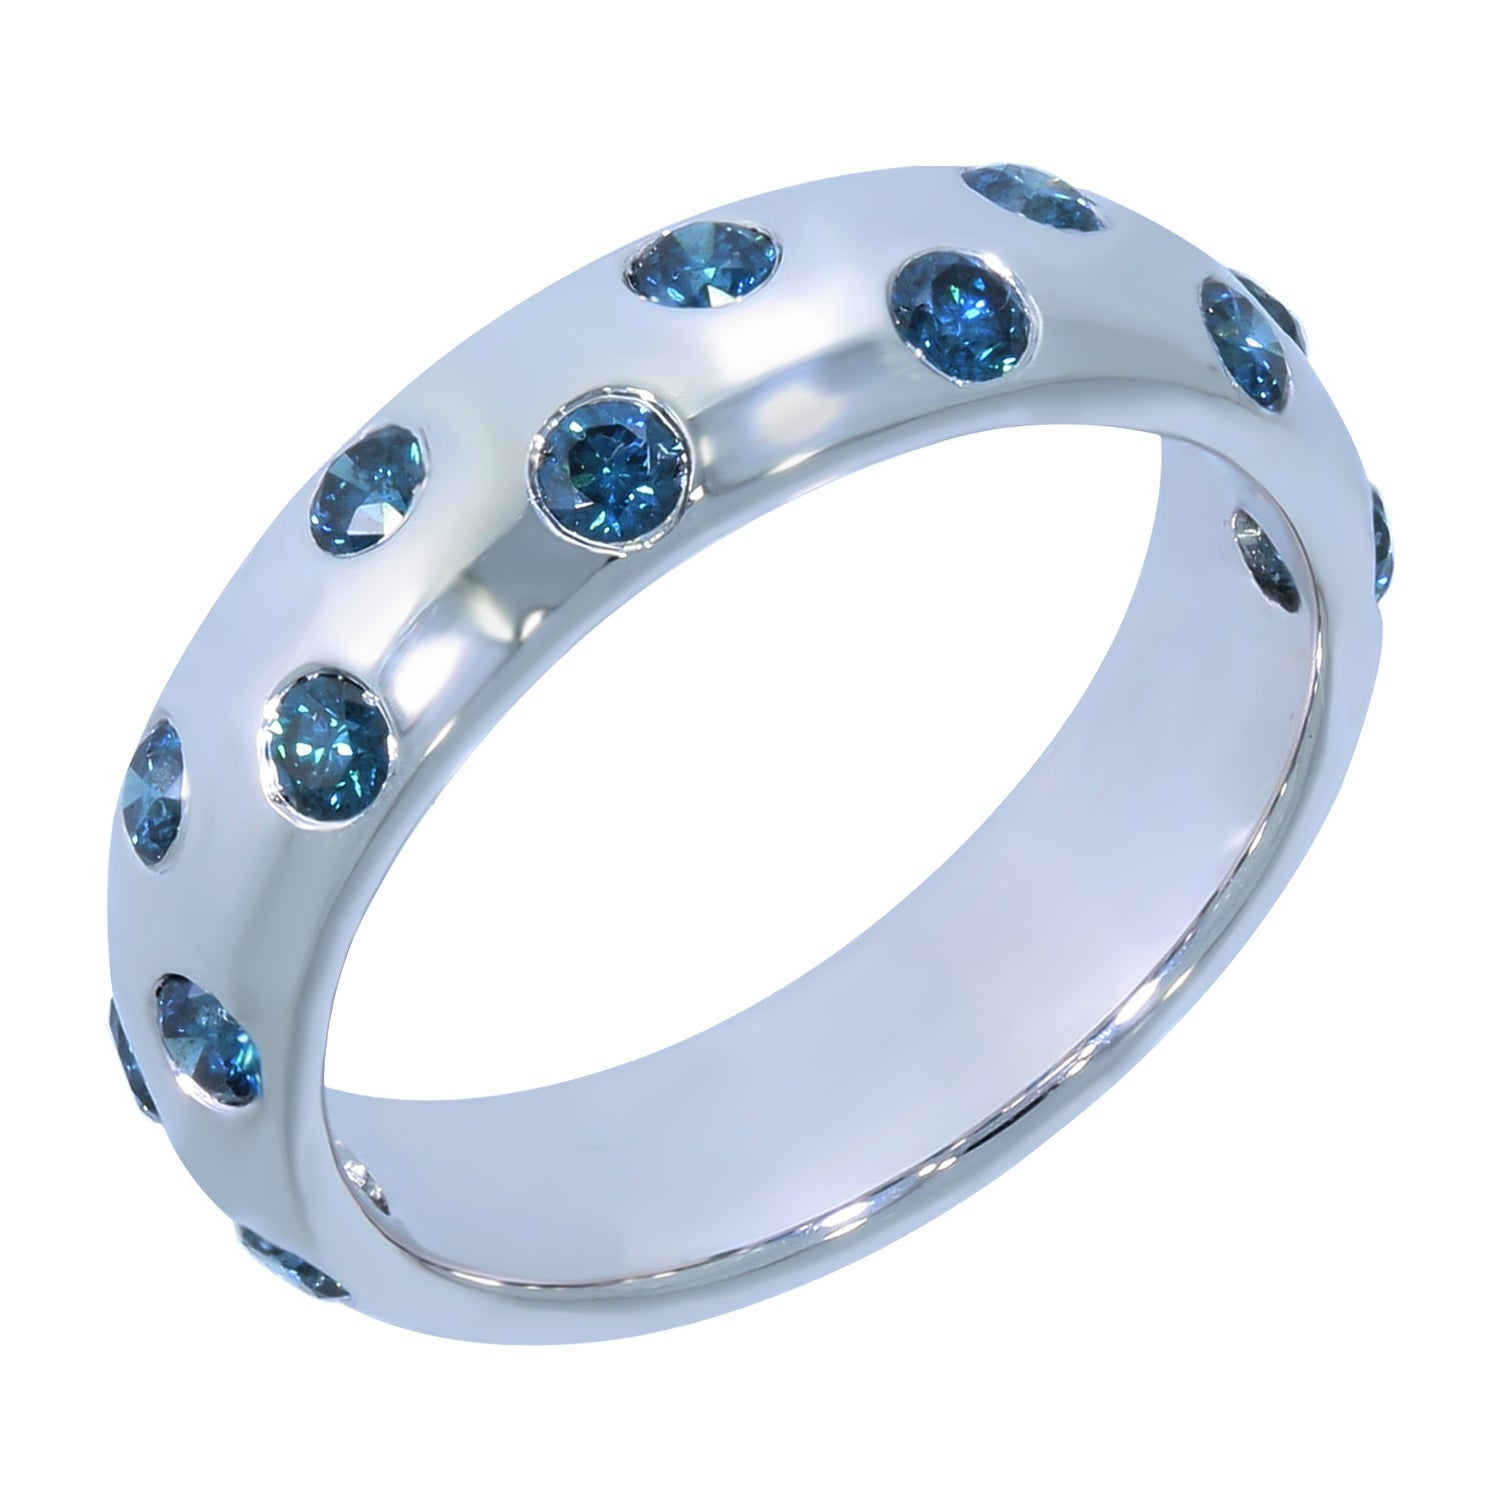 Prism Jewel 0.50Ct Flush Set Blue Color Diamond Wedding Band, 5.45mm Wide - Thumbnail 0